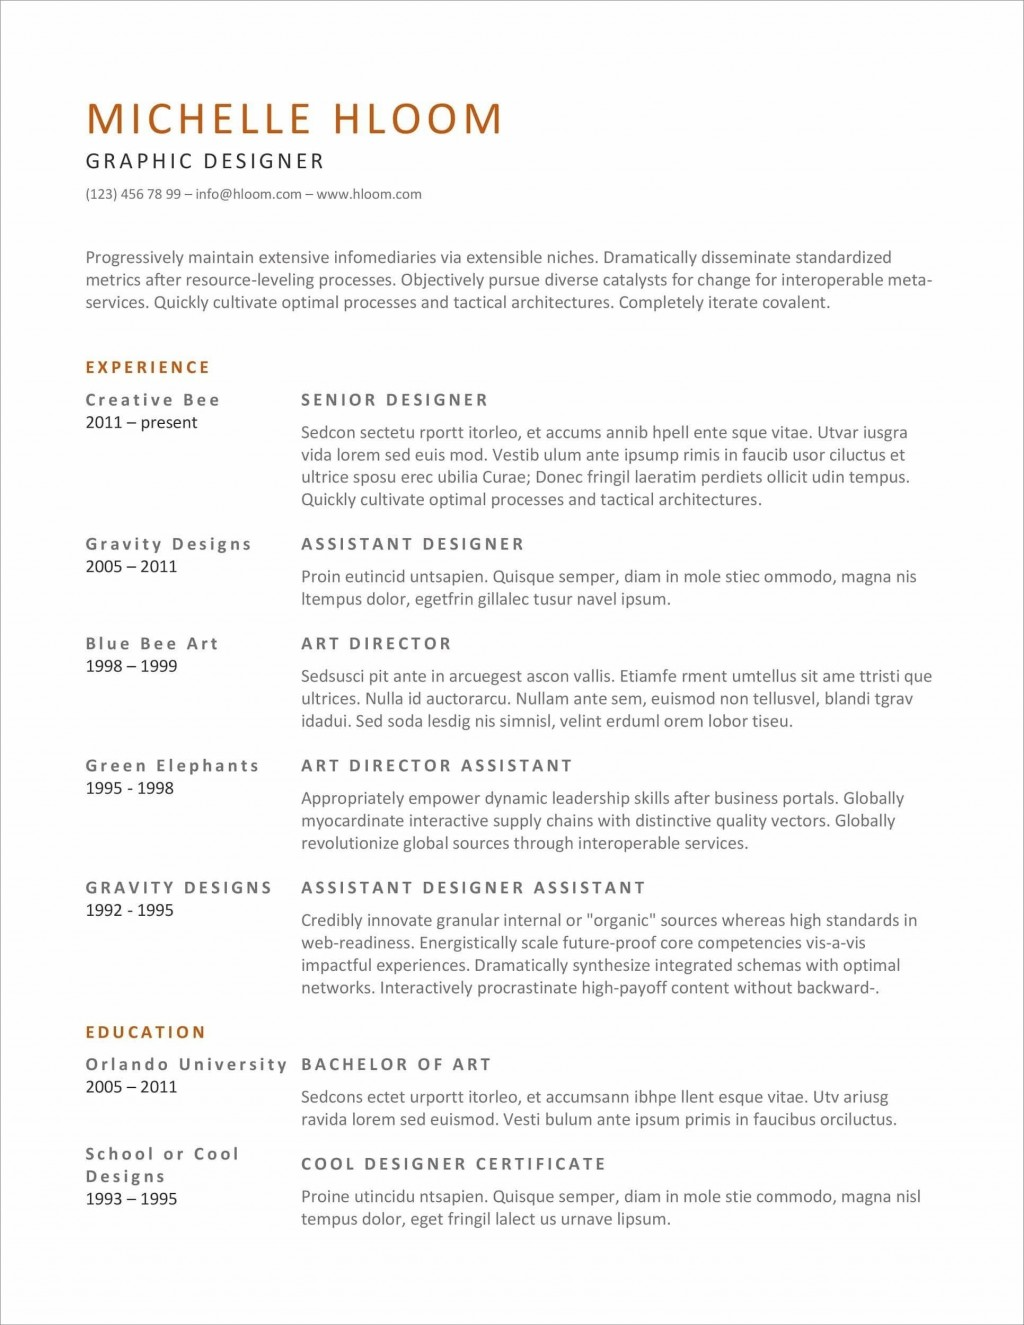 M Word Template Resume Idea  Ms Design Creative Free Download 2020Large